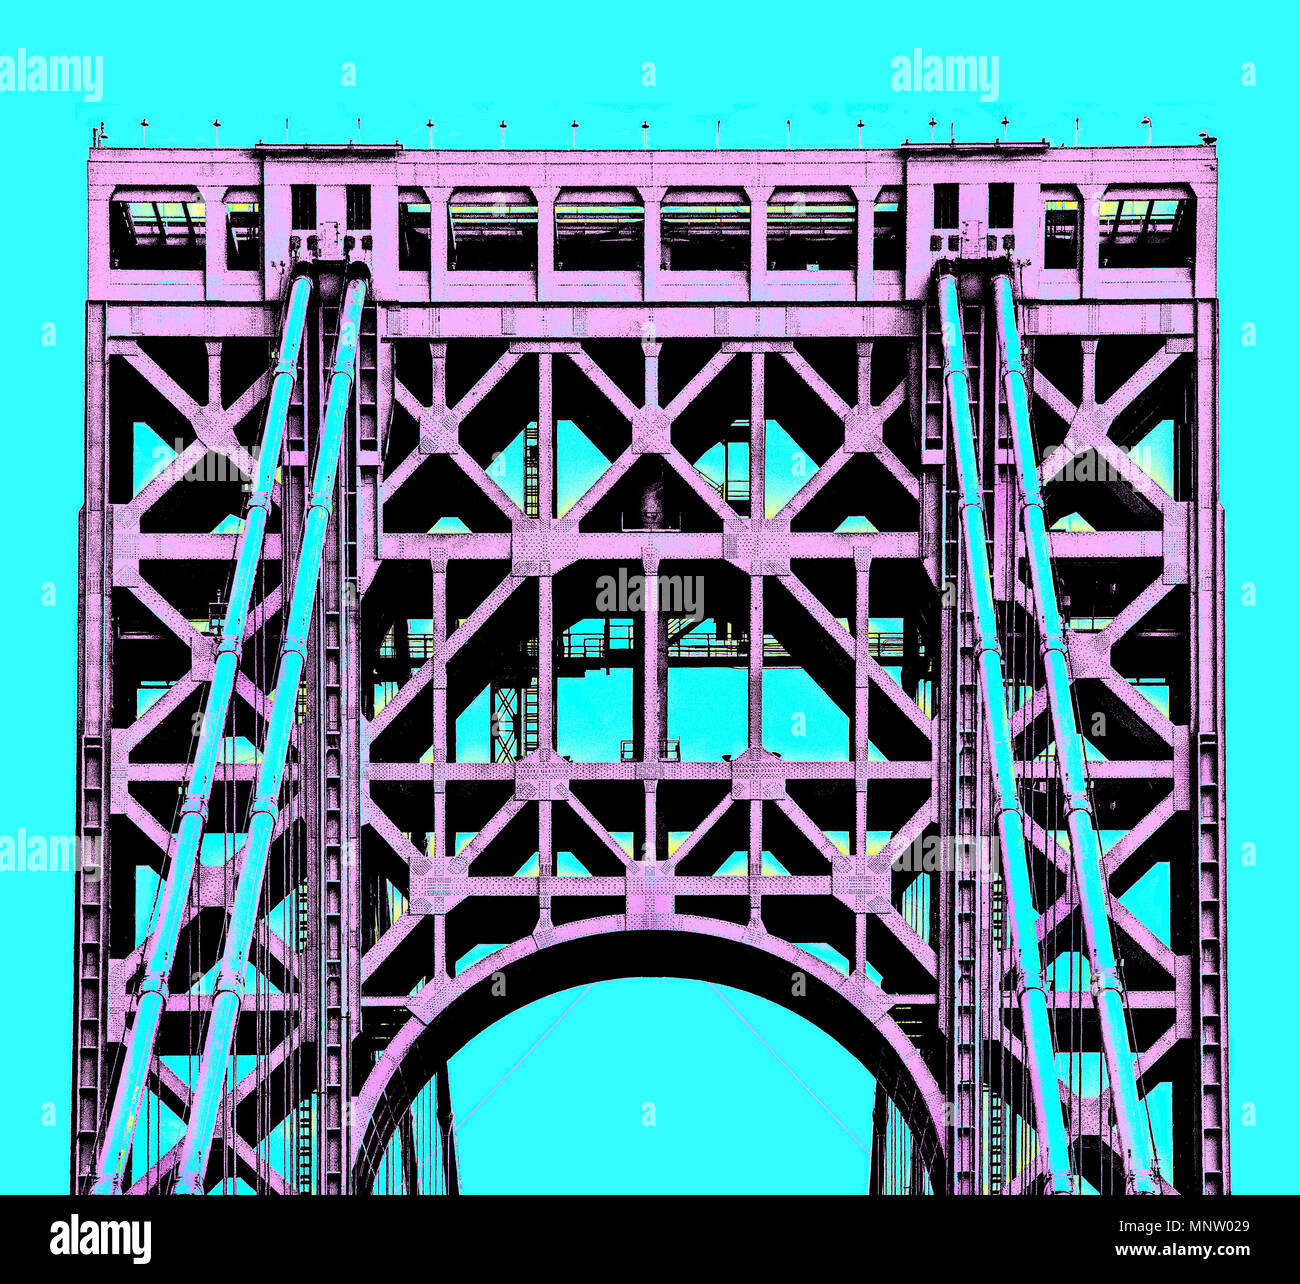 New York George Washington Bridge Posterized rendering. - Stock Image